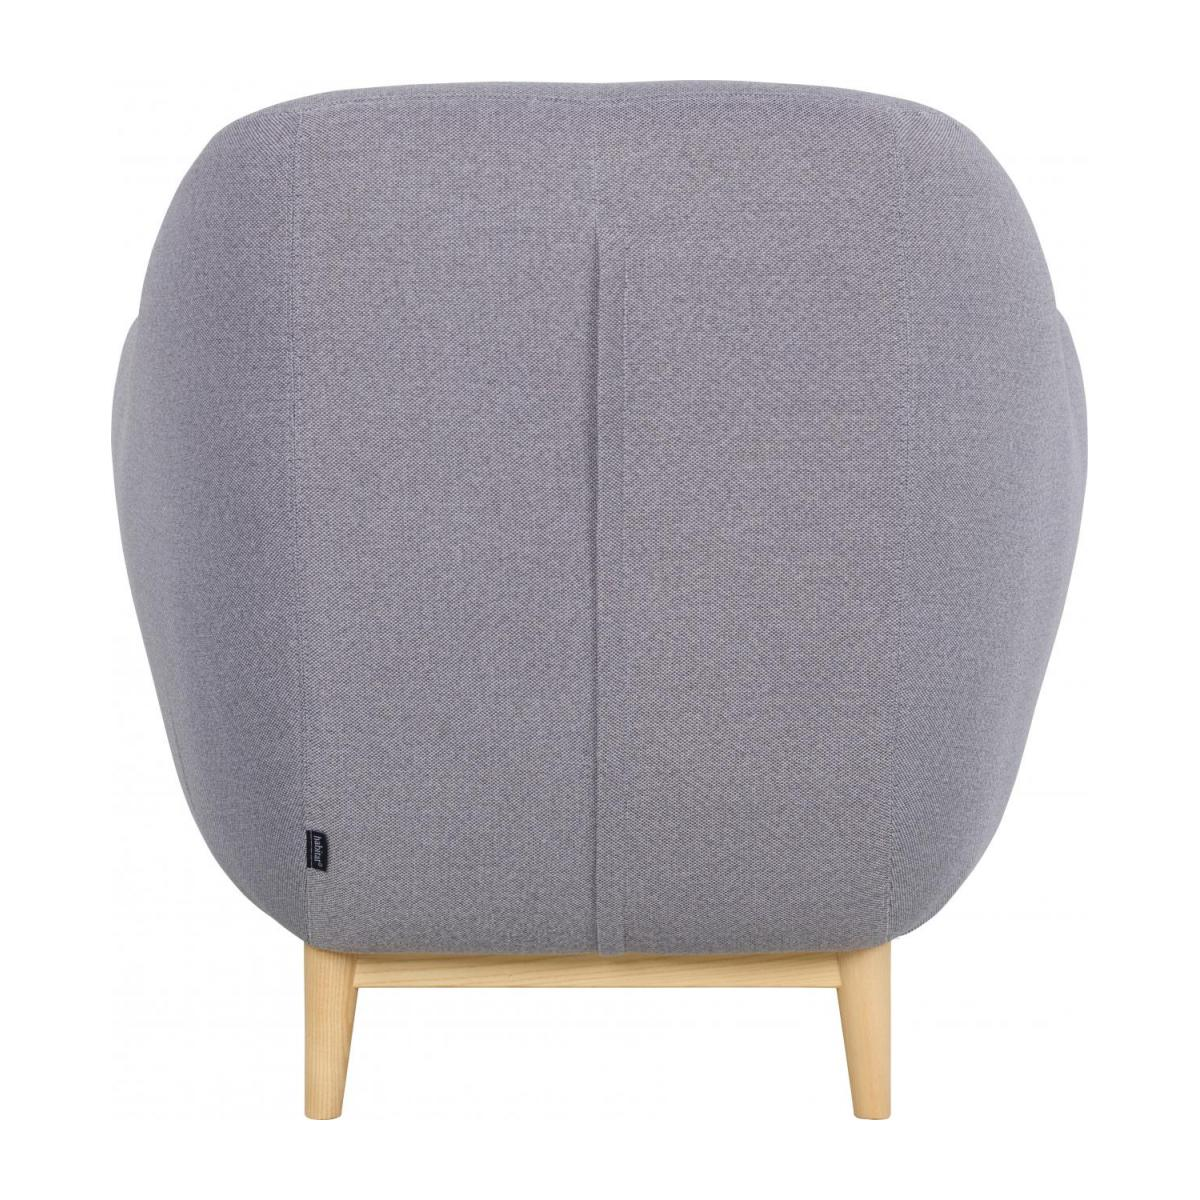 Armchair made of fabric, grey n°3